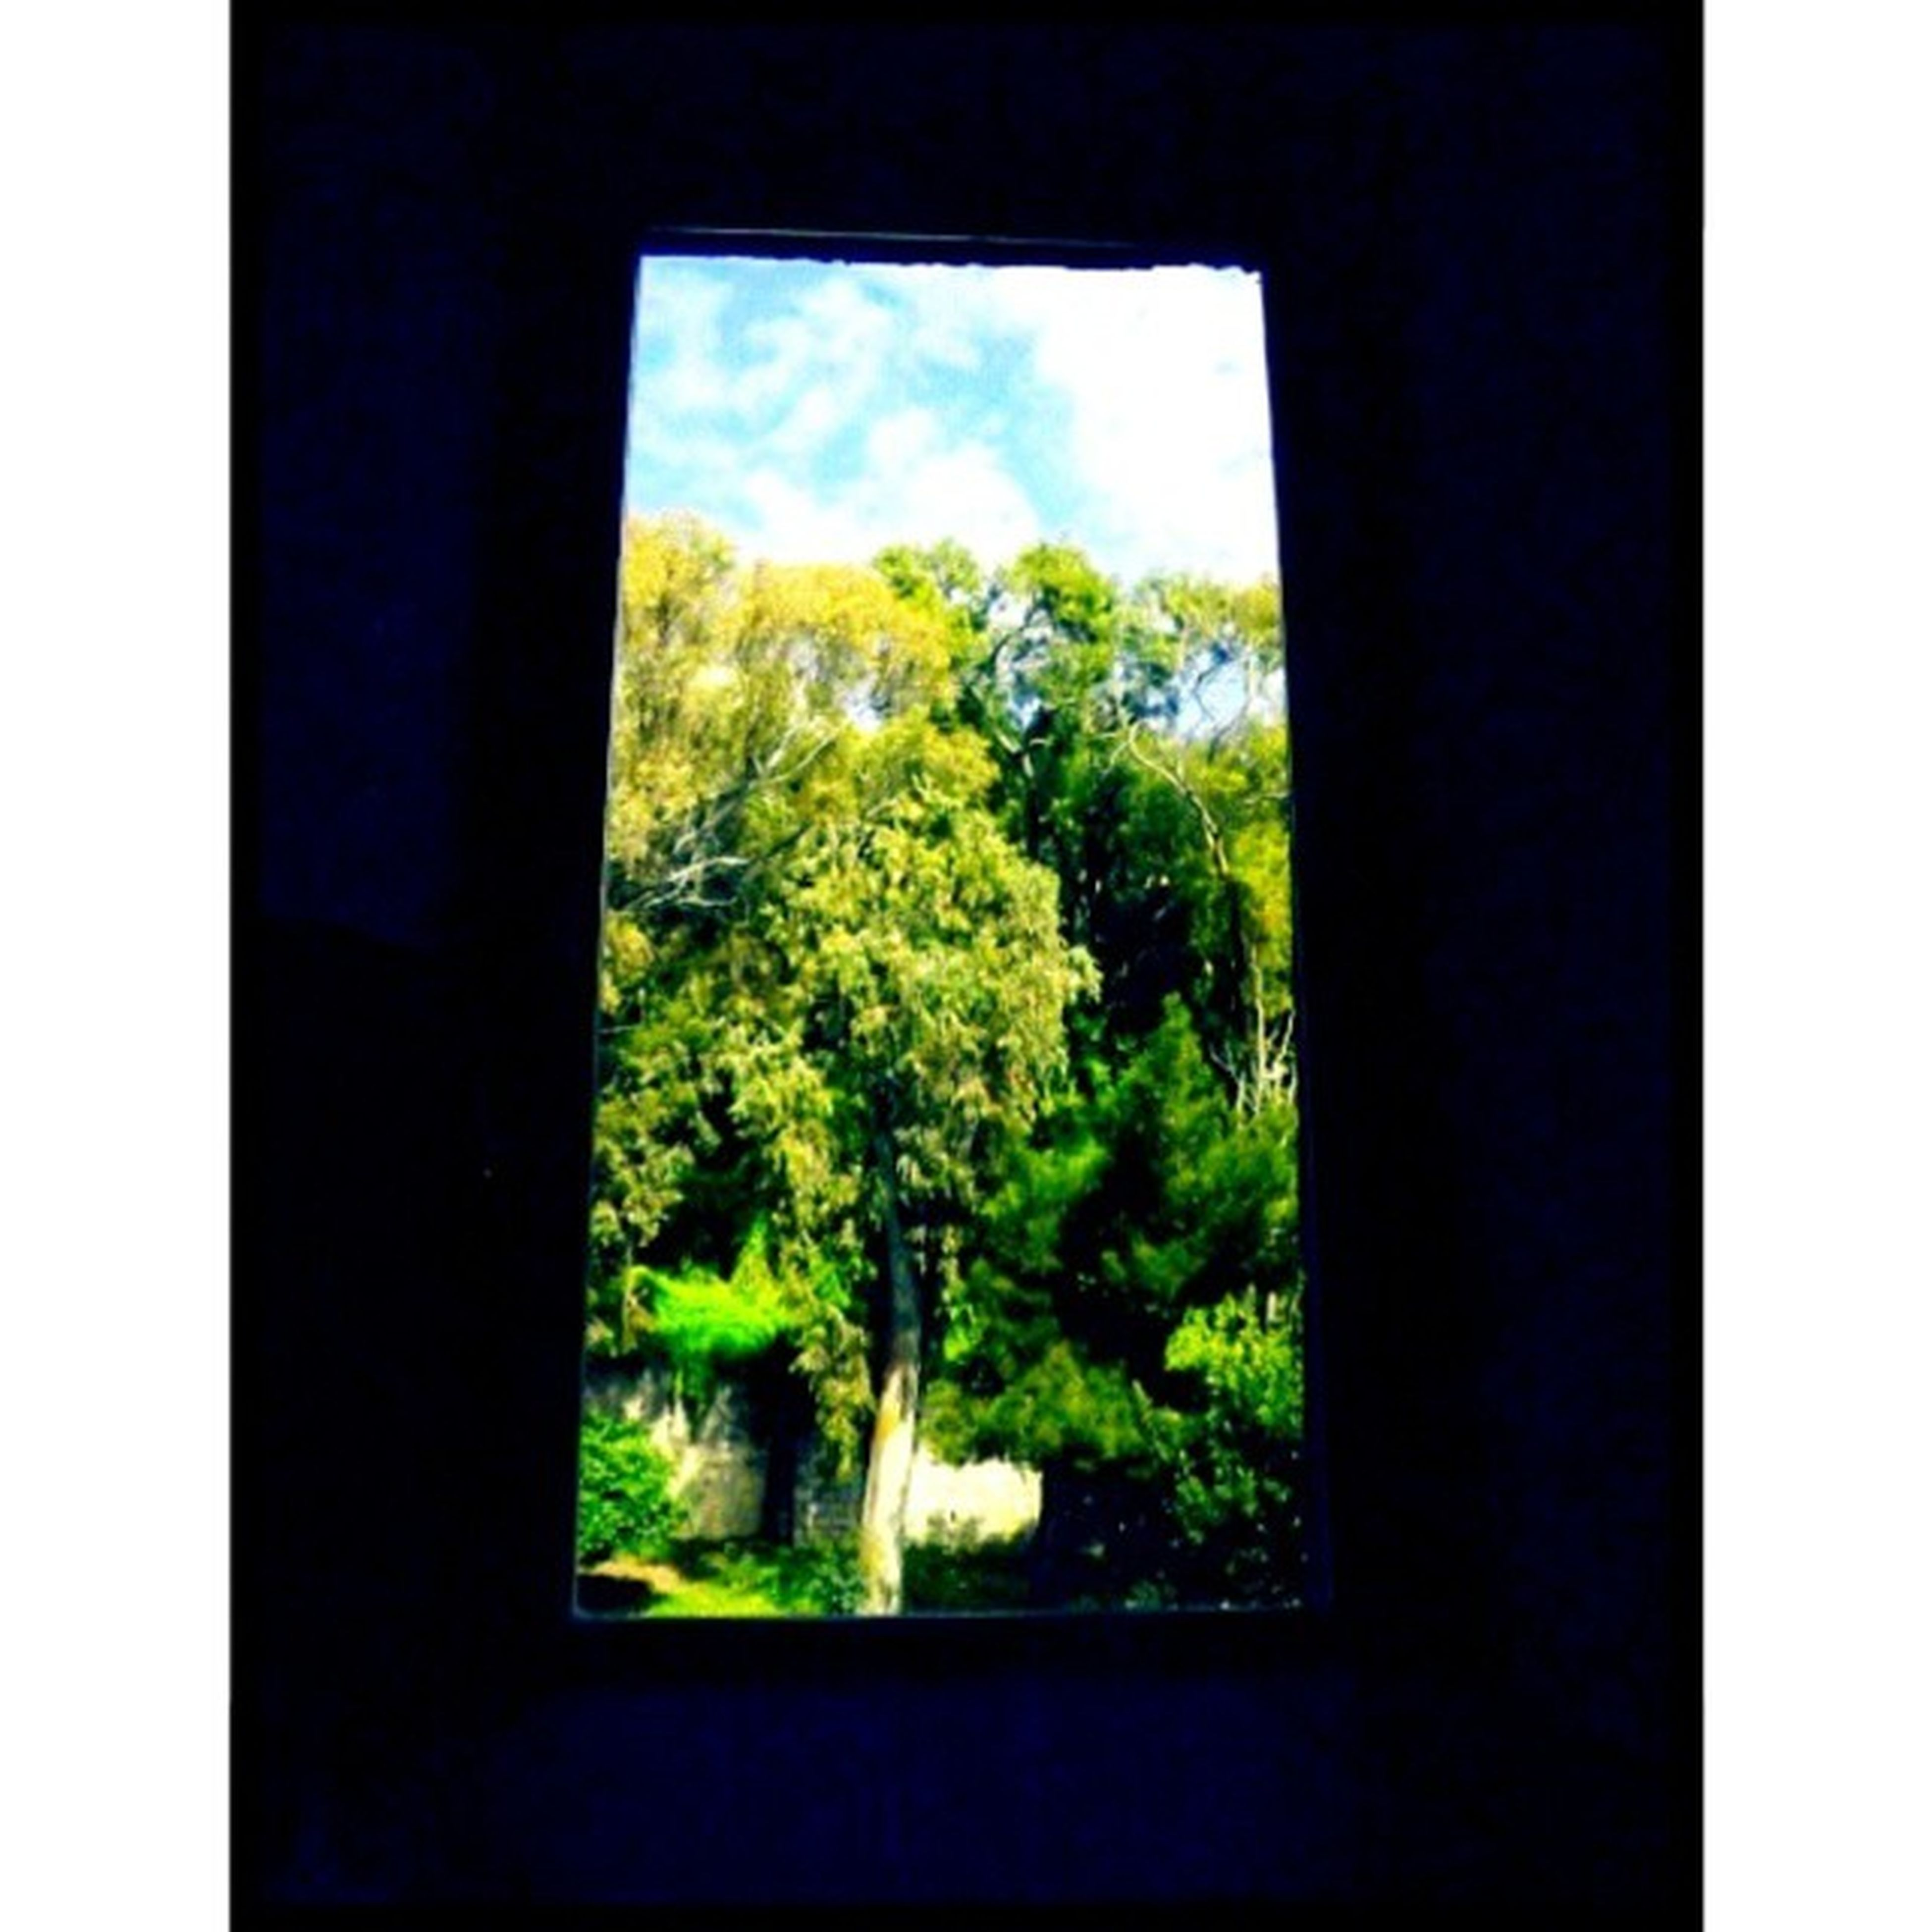 window, transfer print, indoors, tree, glass - material, growth, auto post production filter, green color, transparent, plant, nature, looking through window, house, sky, day, beauty in nature, no people, glass, window sill, built structure